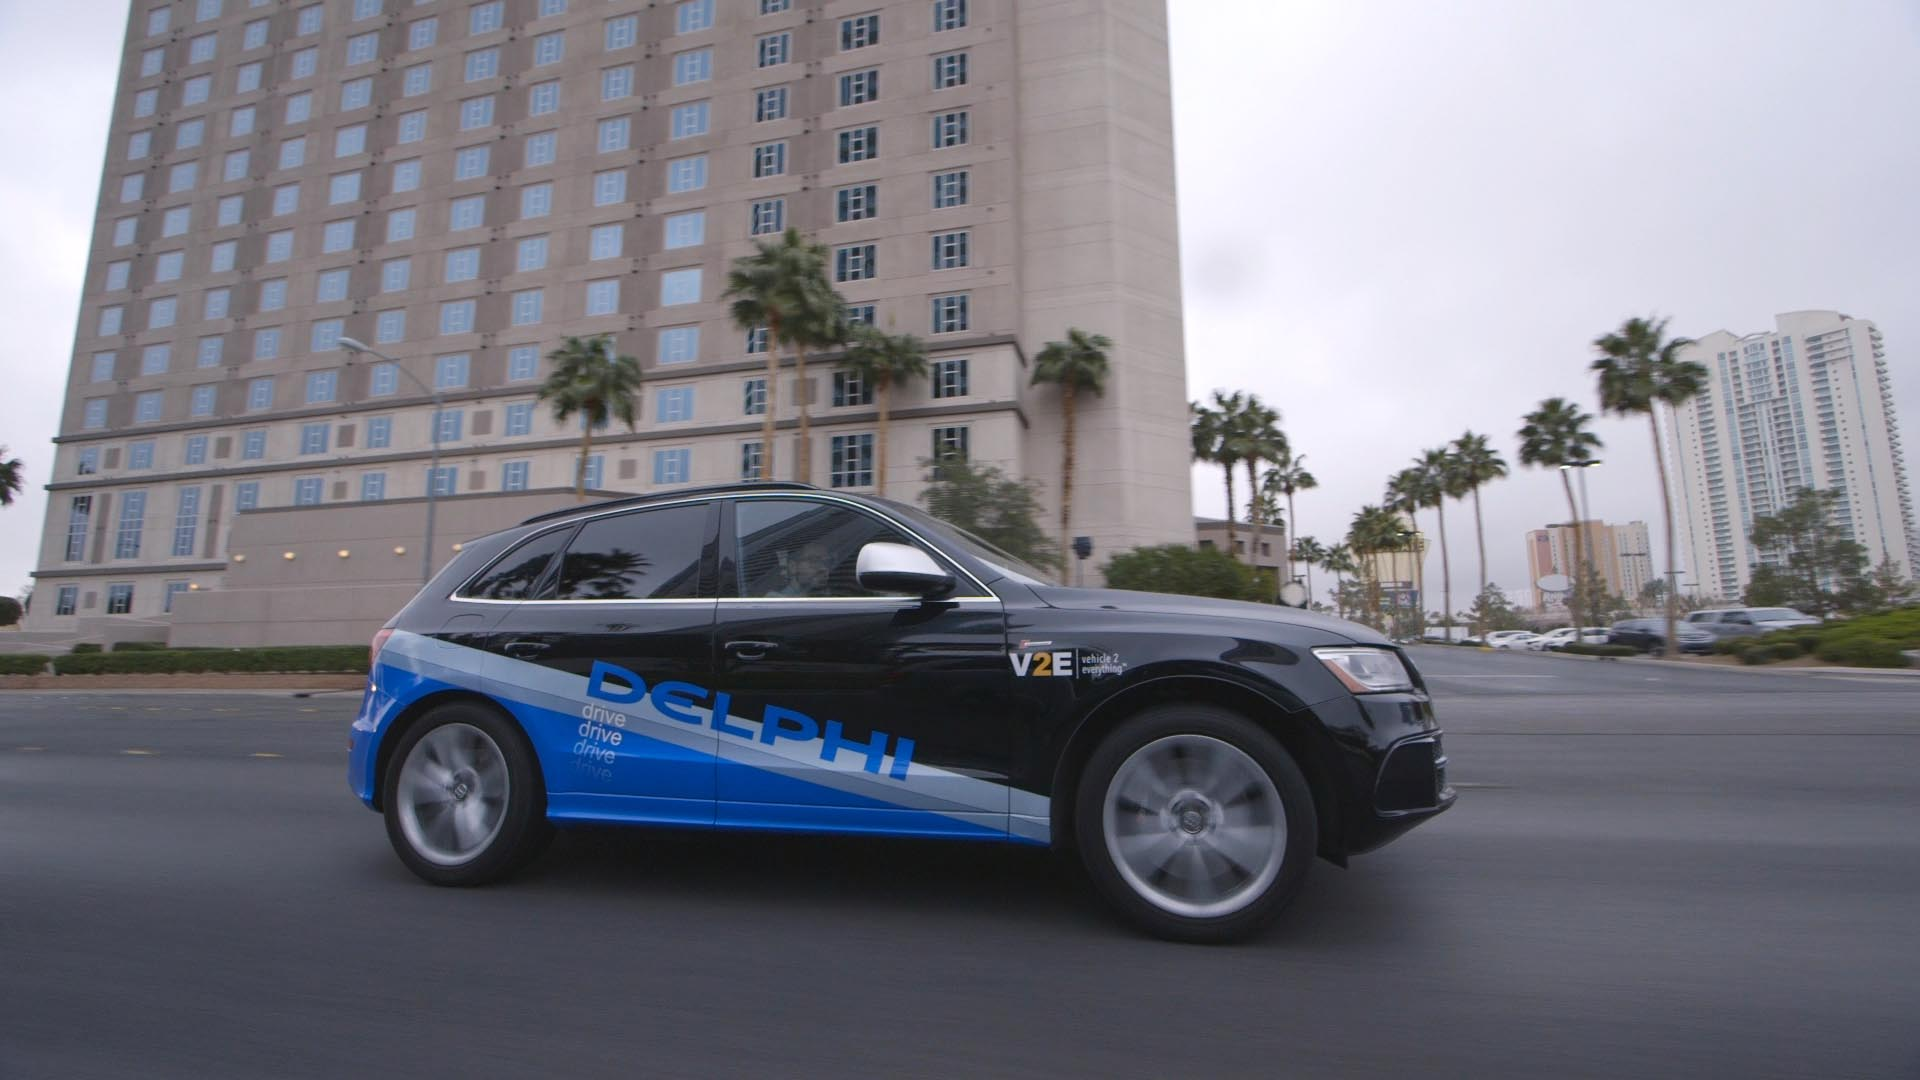 Self-driving vehicle race ramps up as Delphi buys NuTonomy